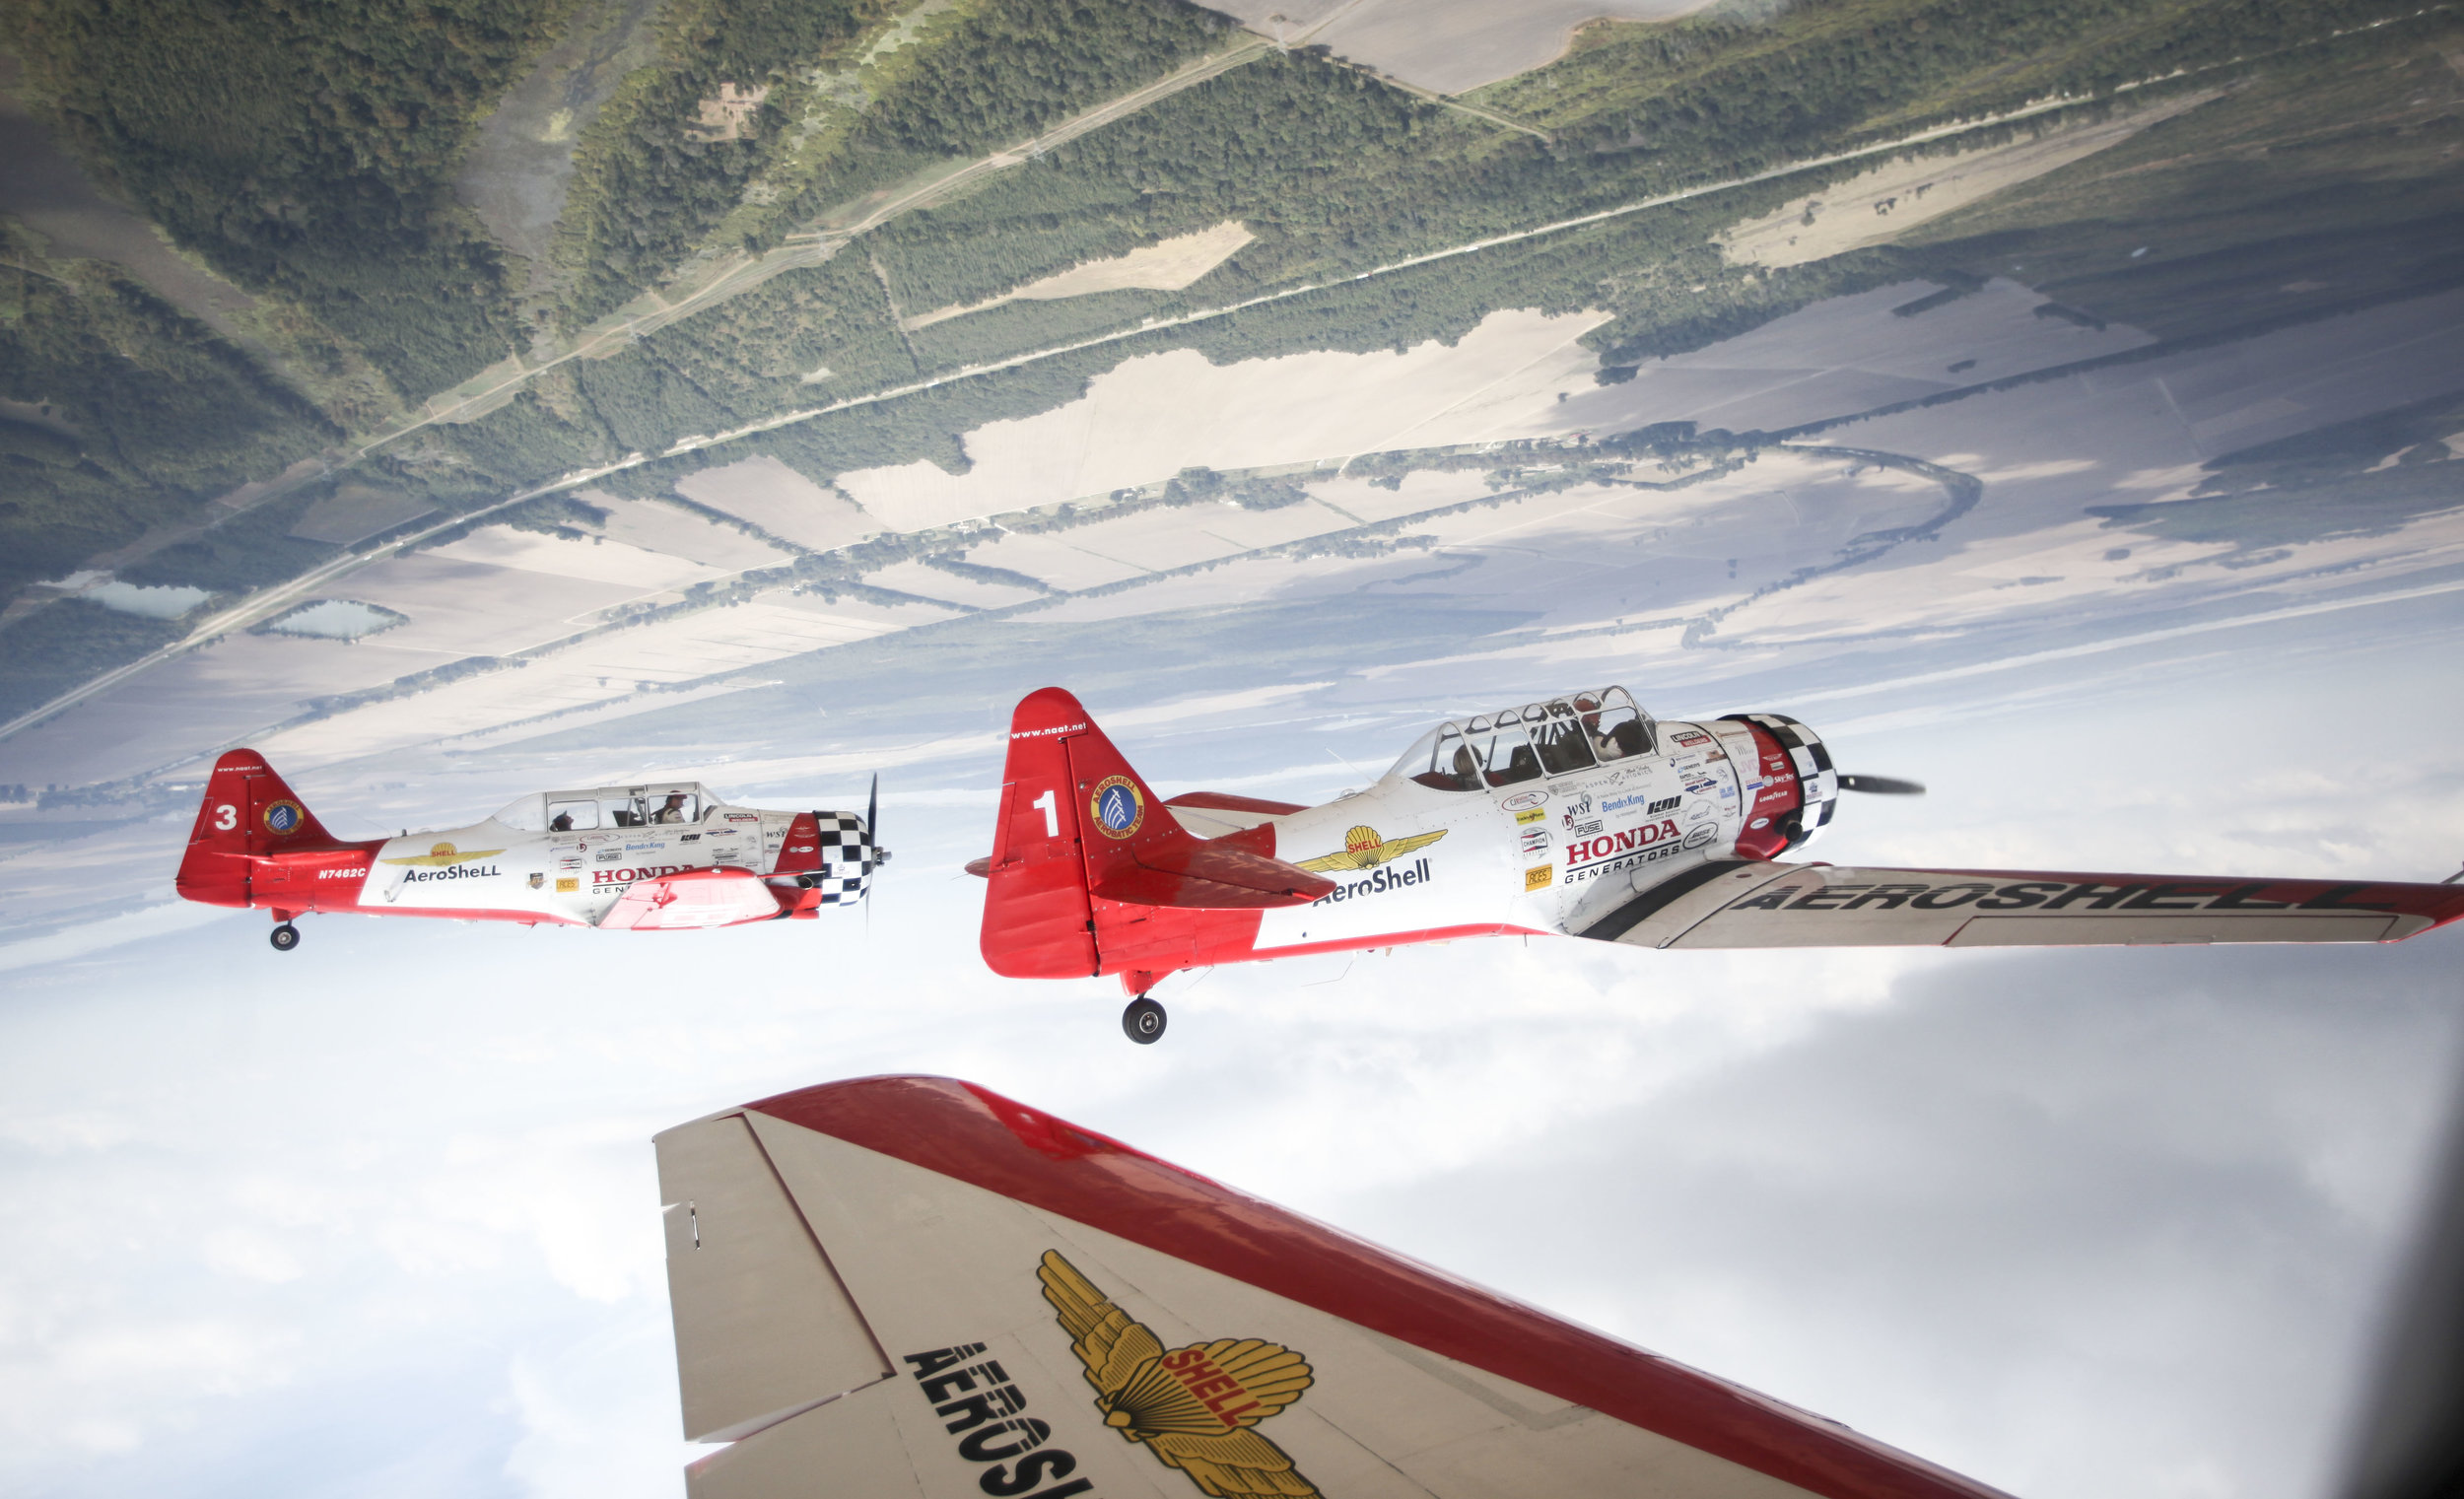 The Aeroshell Aerobatic Team flies North American AT-6 Texans upside down during ride-a-longs ahead of the Southern Heritage Air Foundation's Twilight Air Show and The Best Little Airshow in the World at the Vicksburg-Tallulah Regional Airport in Tallulah, La on Thursday October, 11, 2018.